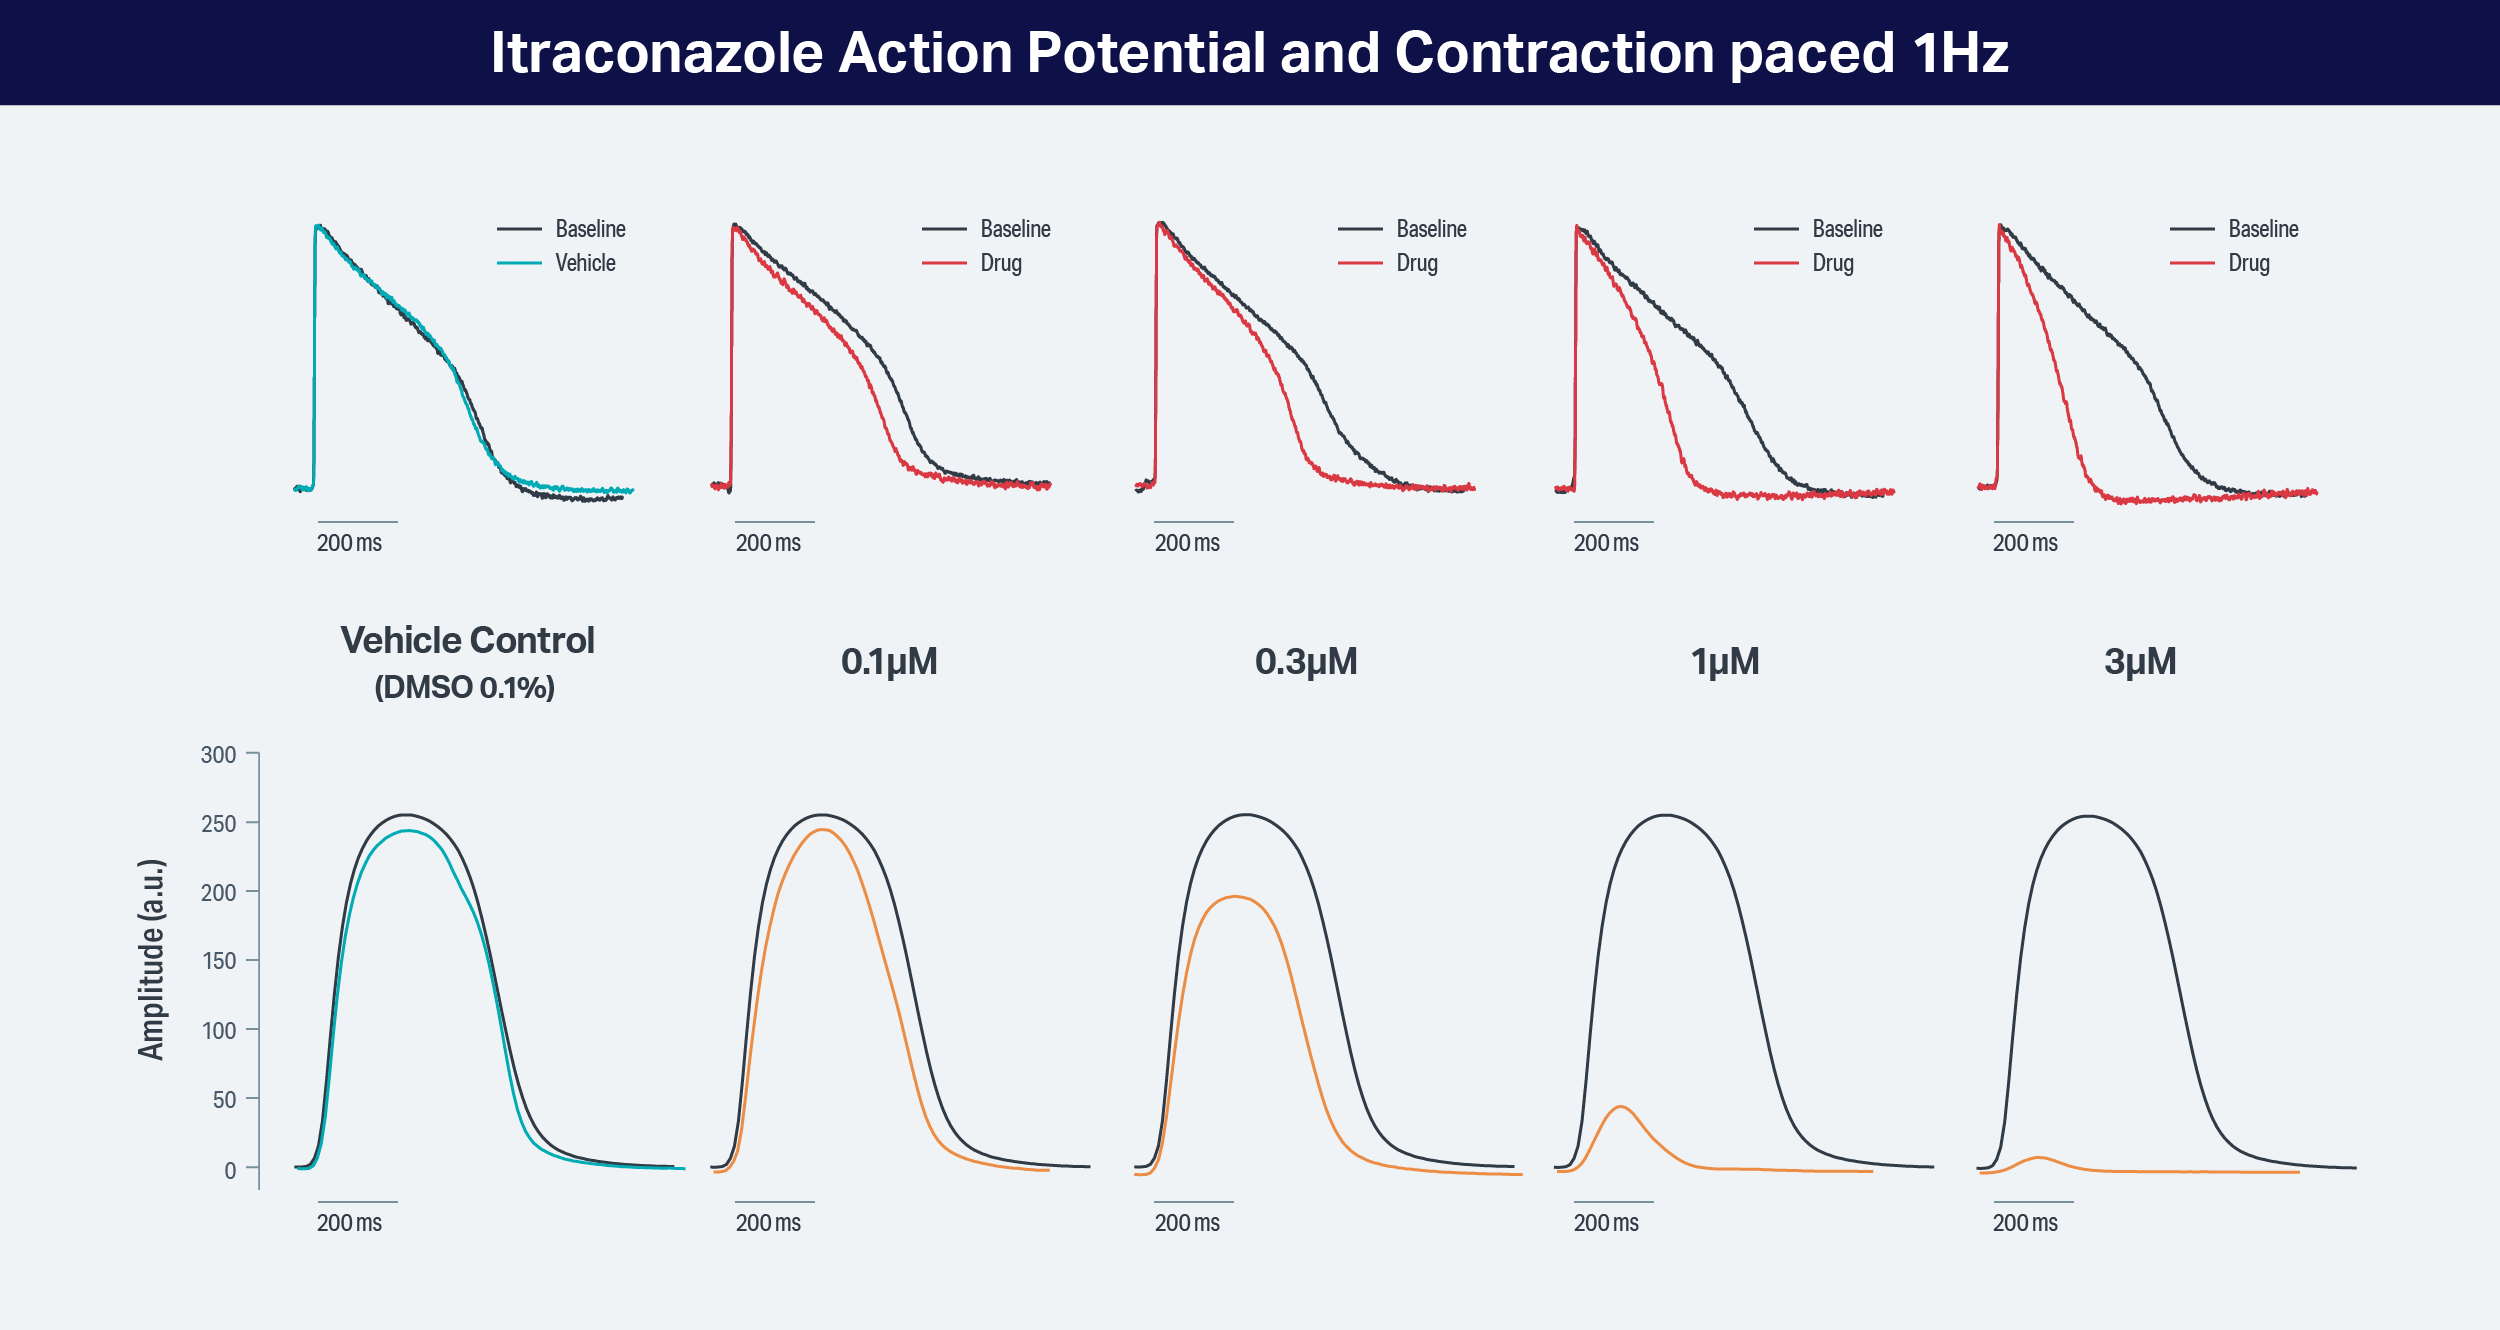 Typical contractility data – Intraconazole. From Clyde Biosceinces